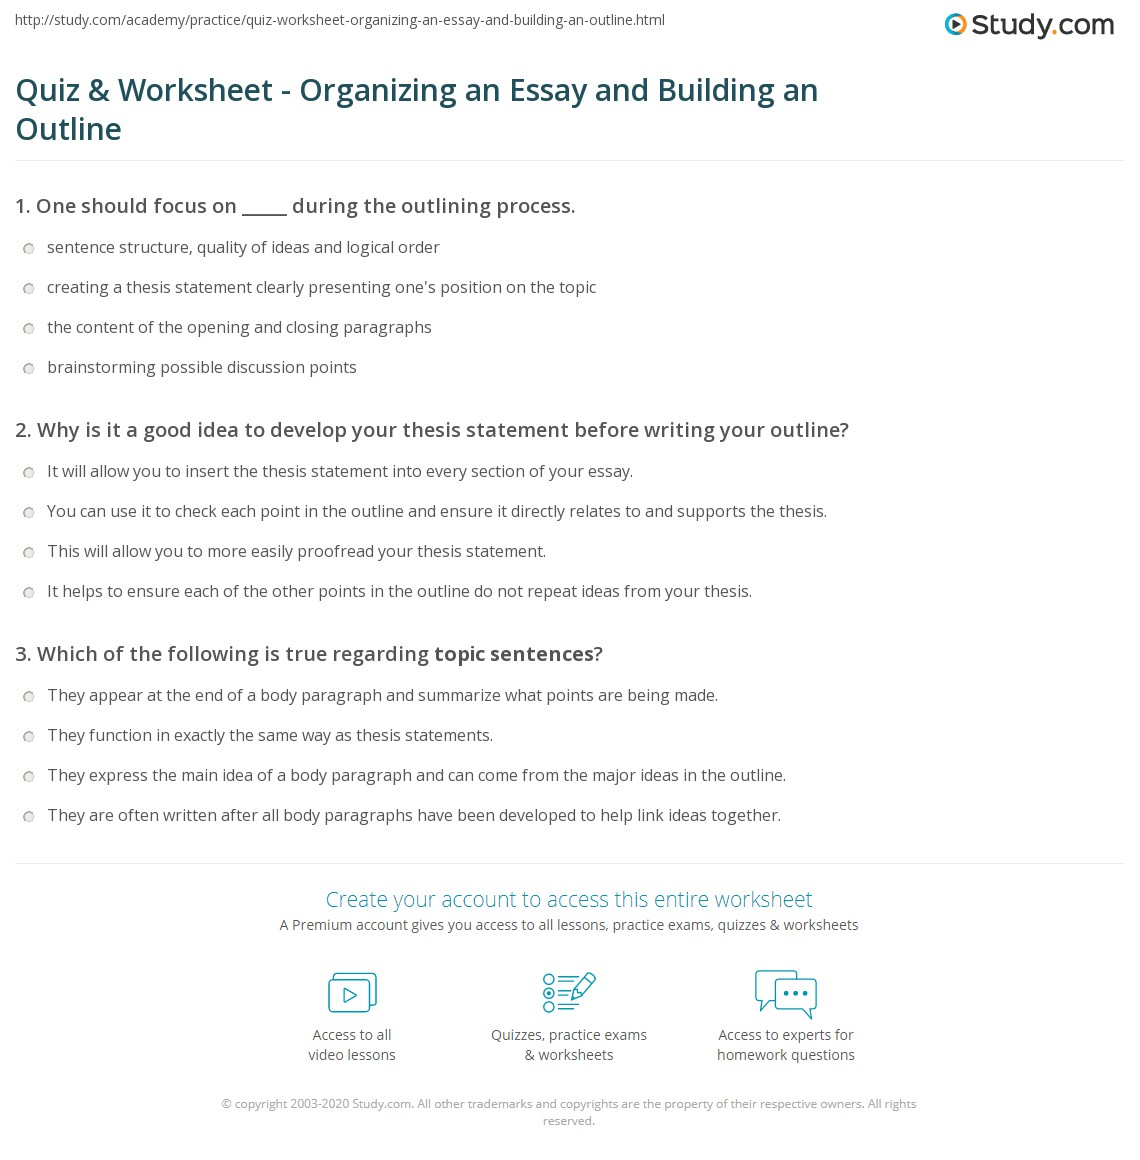 quiz worksheet organizing an essay and building an outline. Black Bedroom Furniture Sets. Home Design Ideas